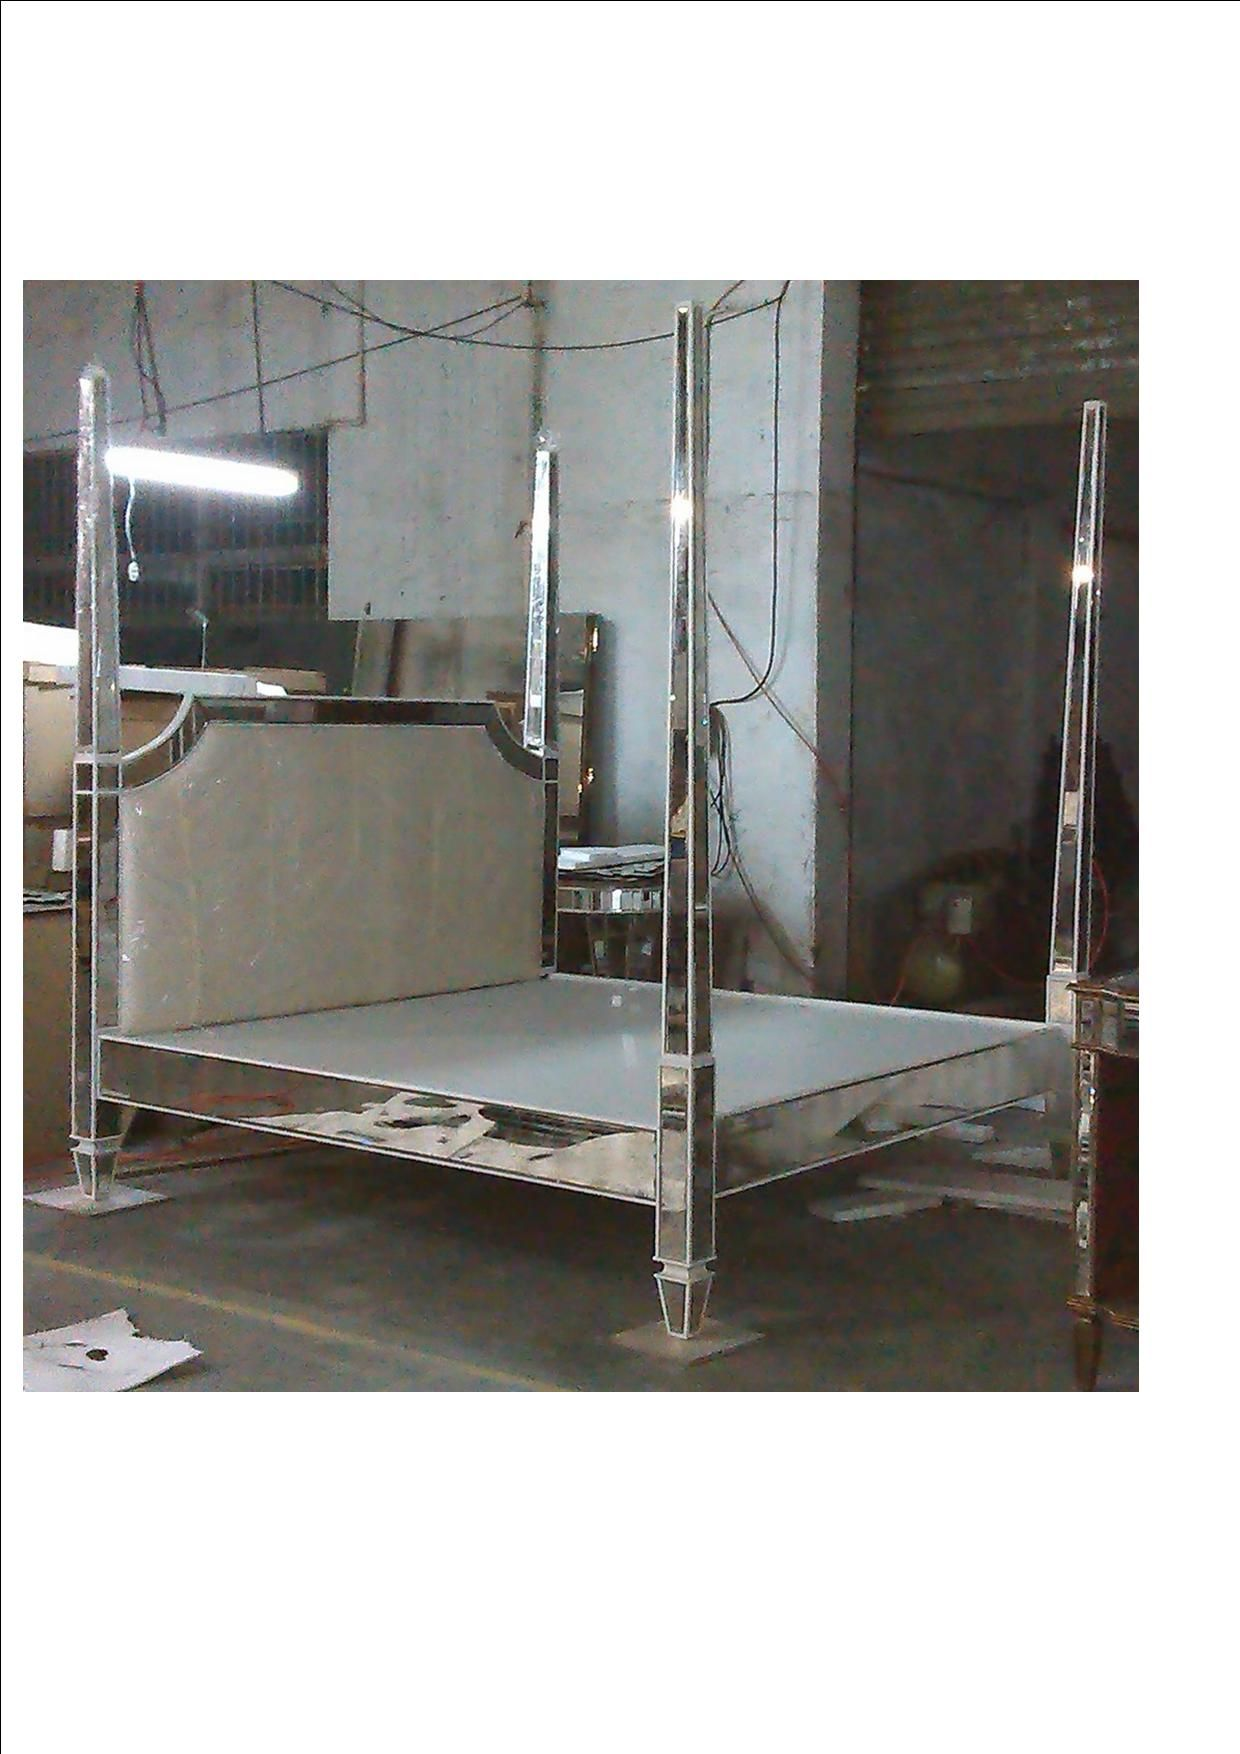 Louis Bed (No Canopy) Ready To Ship The Mirrored Bed